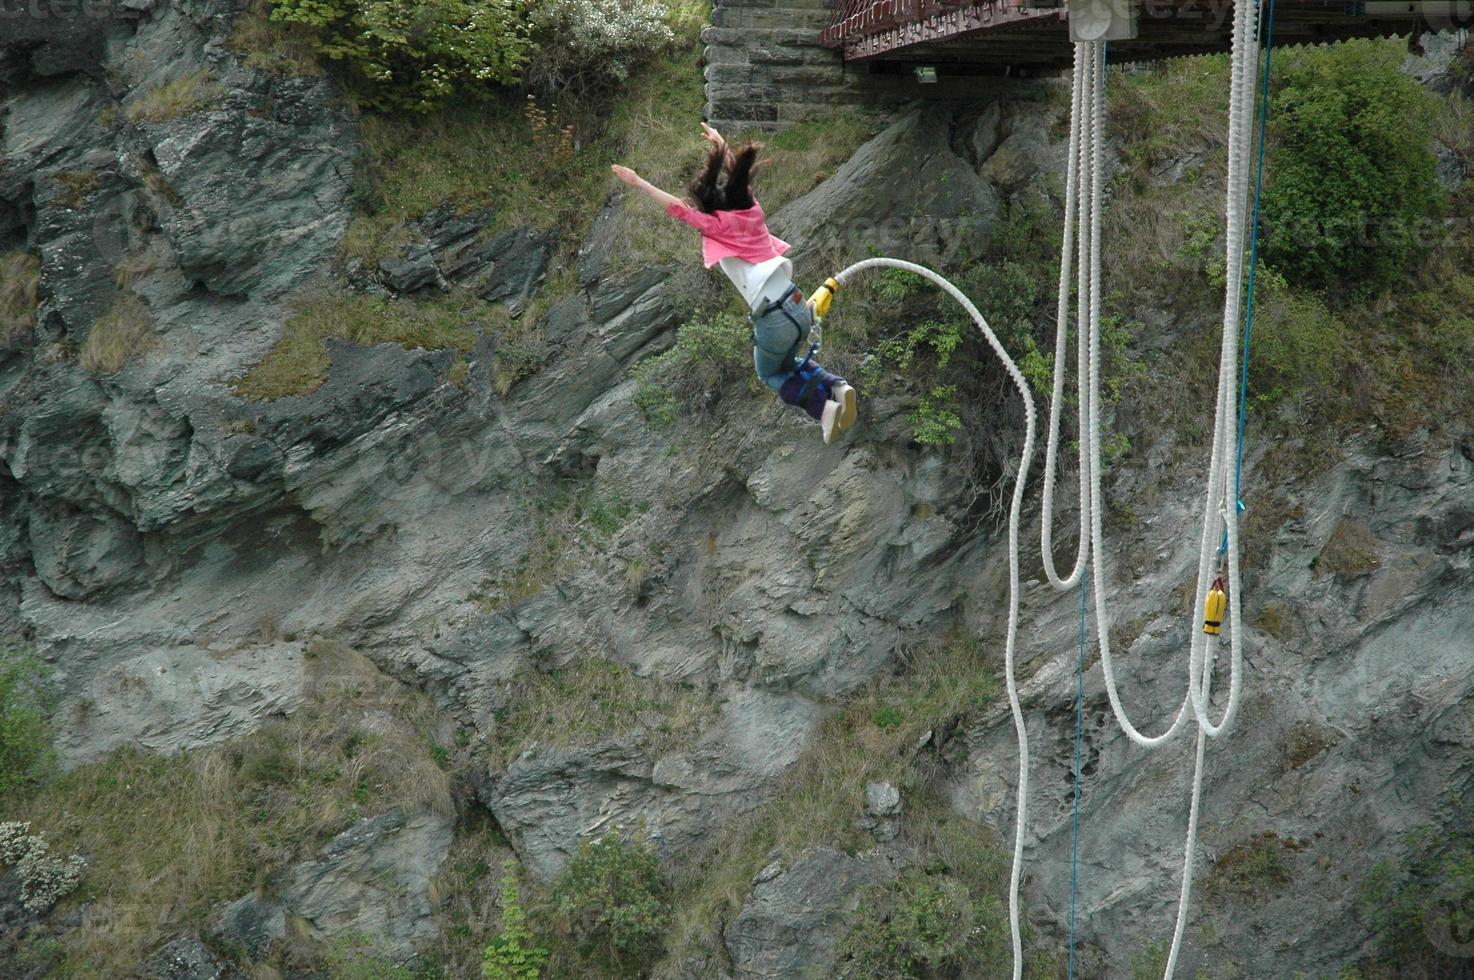 A woman bungee jumping off of a bridge photo